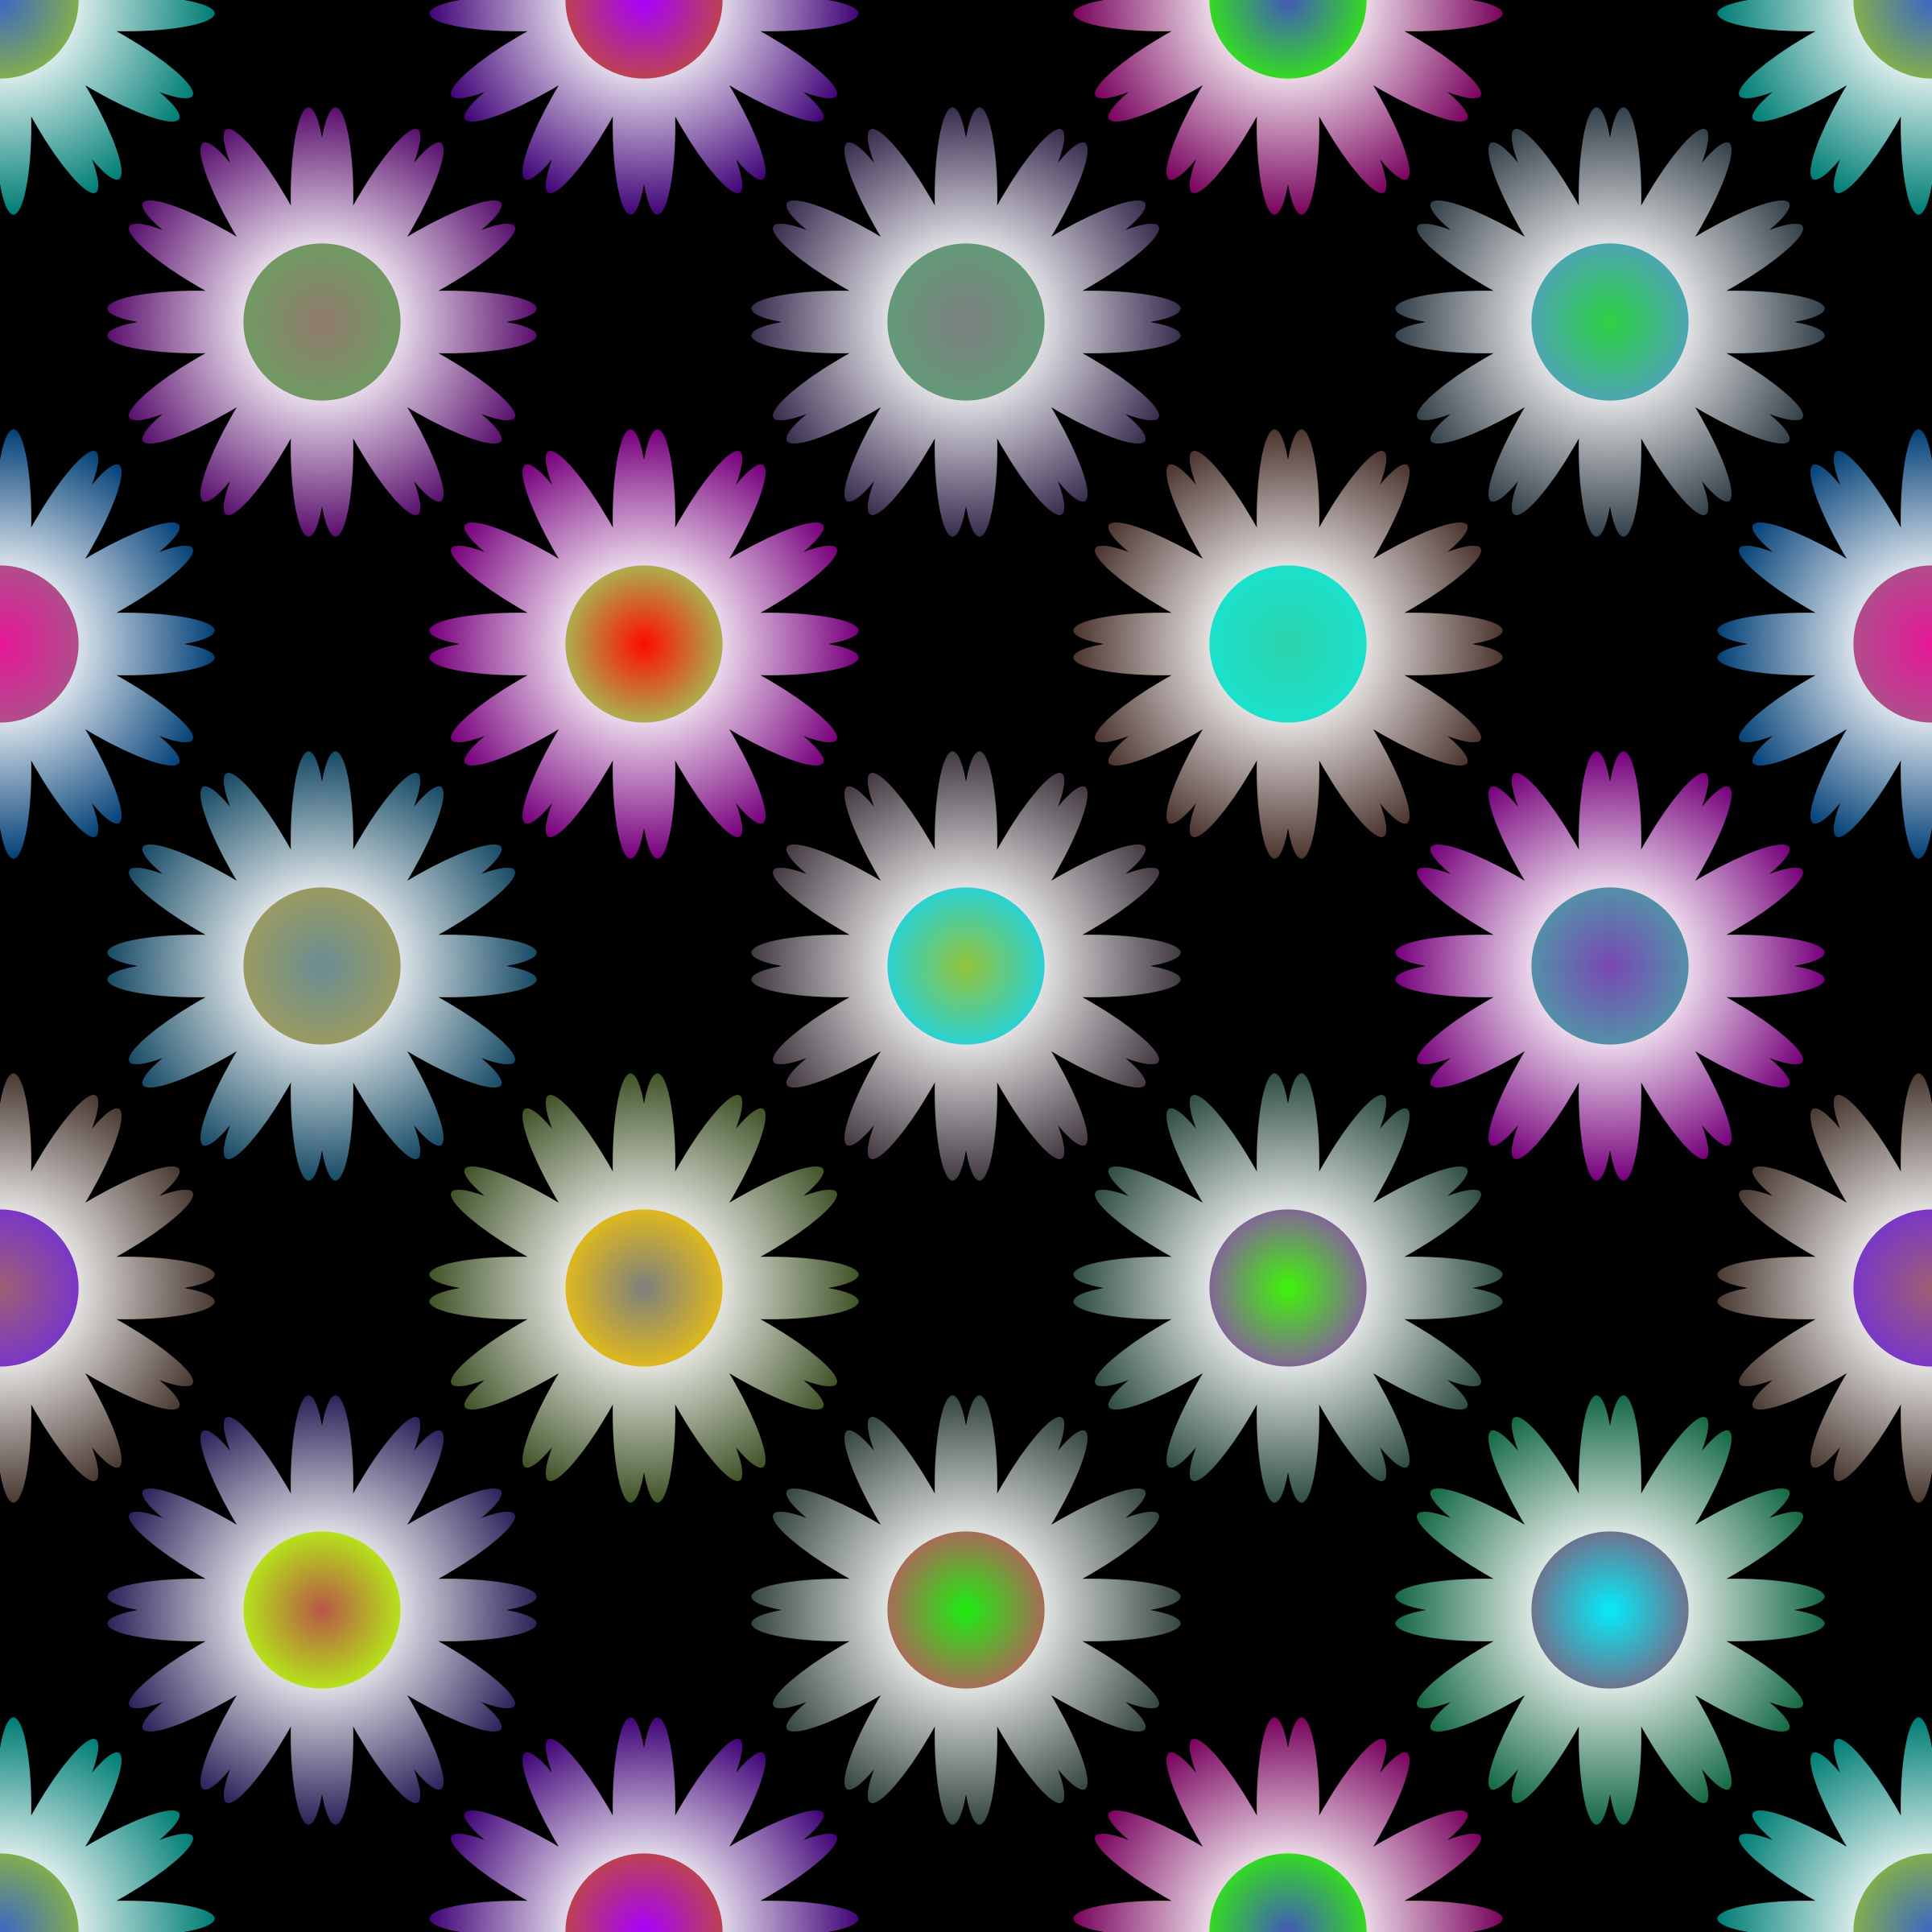 Floral tile 2 by Firkin